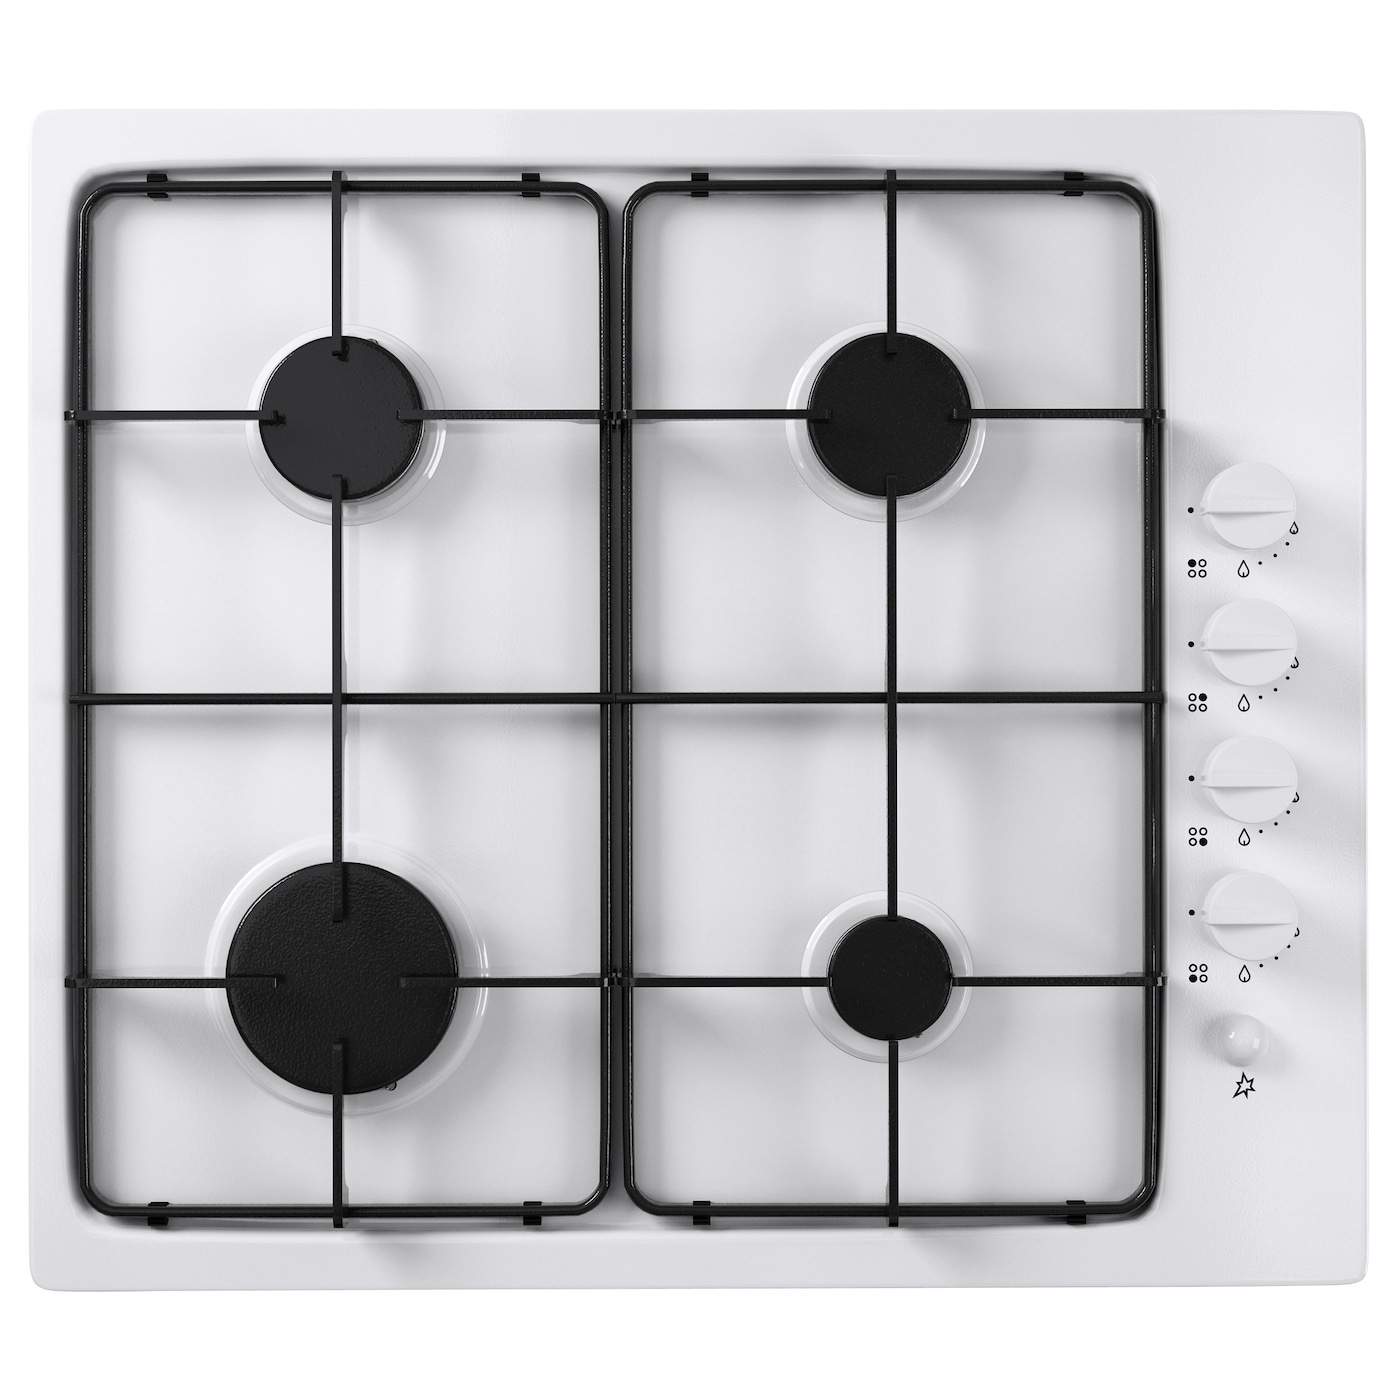 IKEA LAGAN HGA4K gas hob Removable pan supports for easy cleaning.